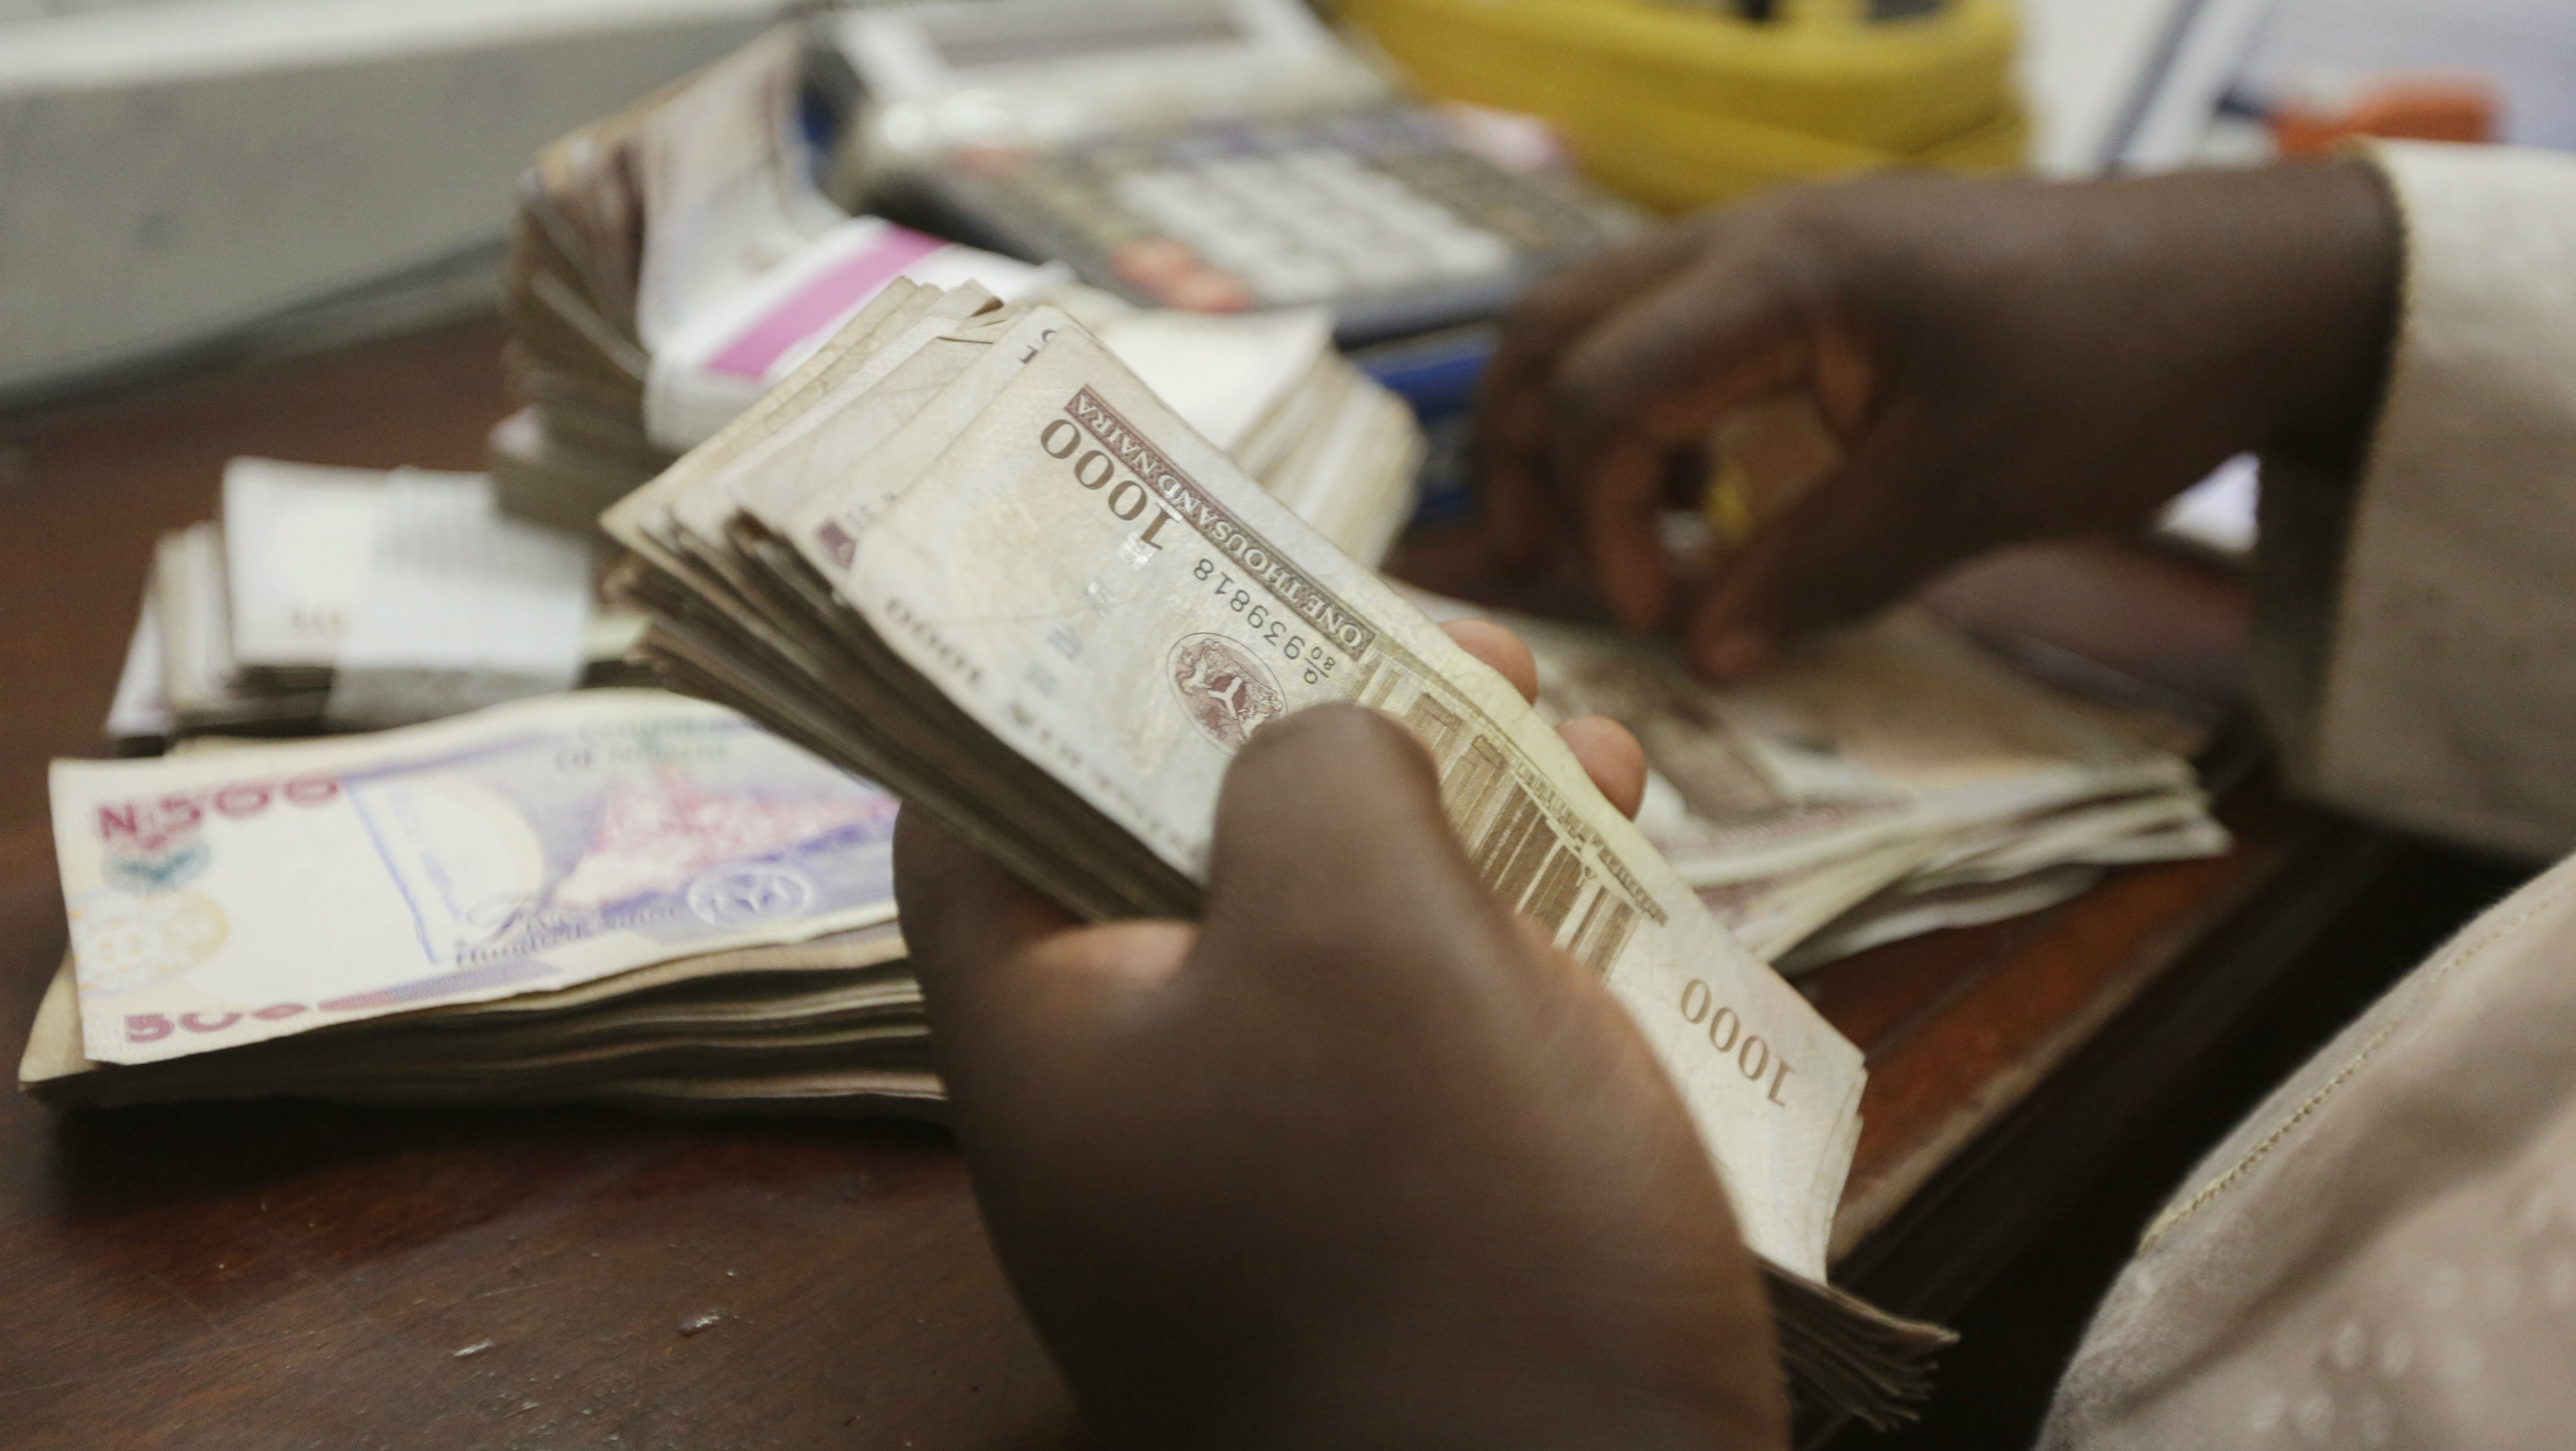 In this photo taken Tuesday Oct. 20, 2015, a money changer counts Nigerian naira currency at a bureau de change, where a dollar buys 222 naira compared to the official rate of 198, in Lagos, Nigeria. The IMF is pressing Nigeria to further devalue its naira currency amid uncertainty over the political and economic outlook for Africa's biggest oil producer and economy. Analysts said there's disappointment that President Muhammadu Buhari's long-awaited Cabinet list includes no economic stars. The naira has lost 25 percent of its value in the past year and the stock market has plummeted because of political uncertainty and halved prices for oil that provides most government revenue.